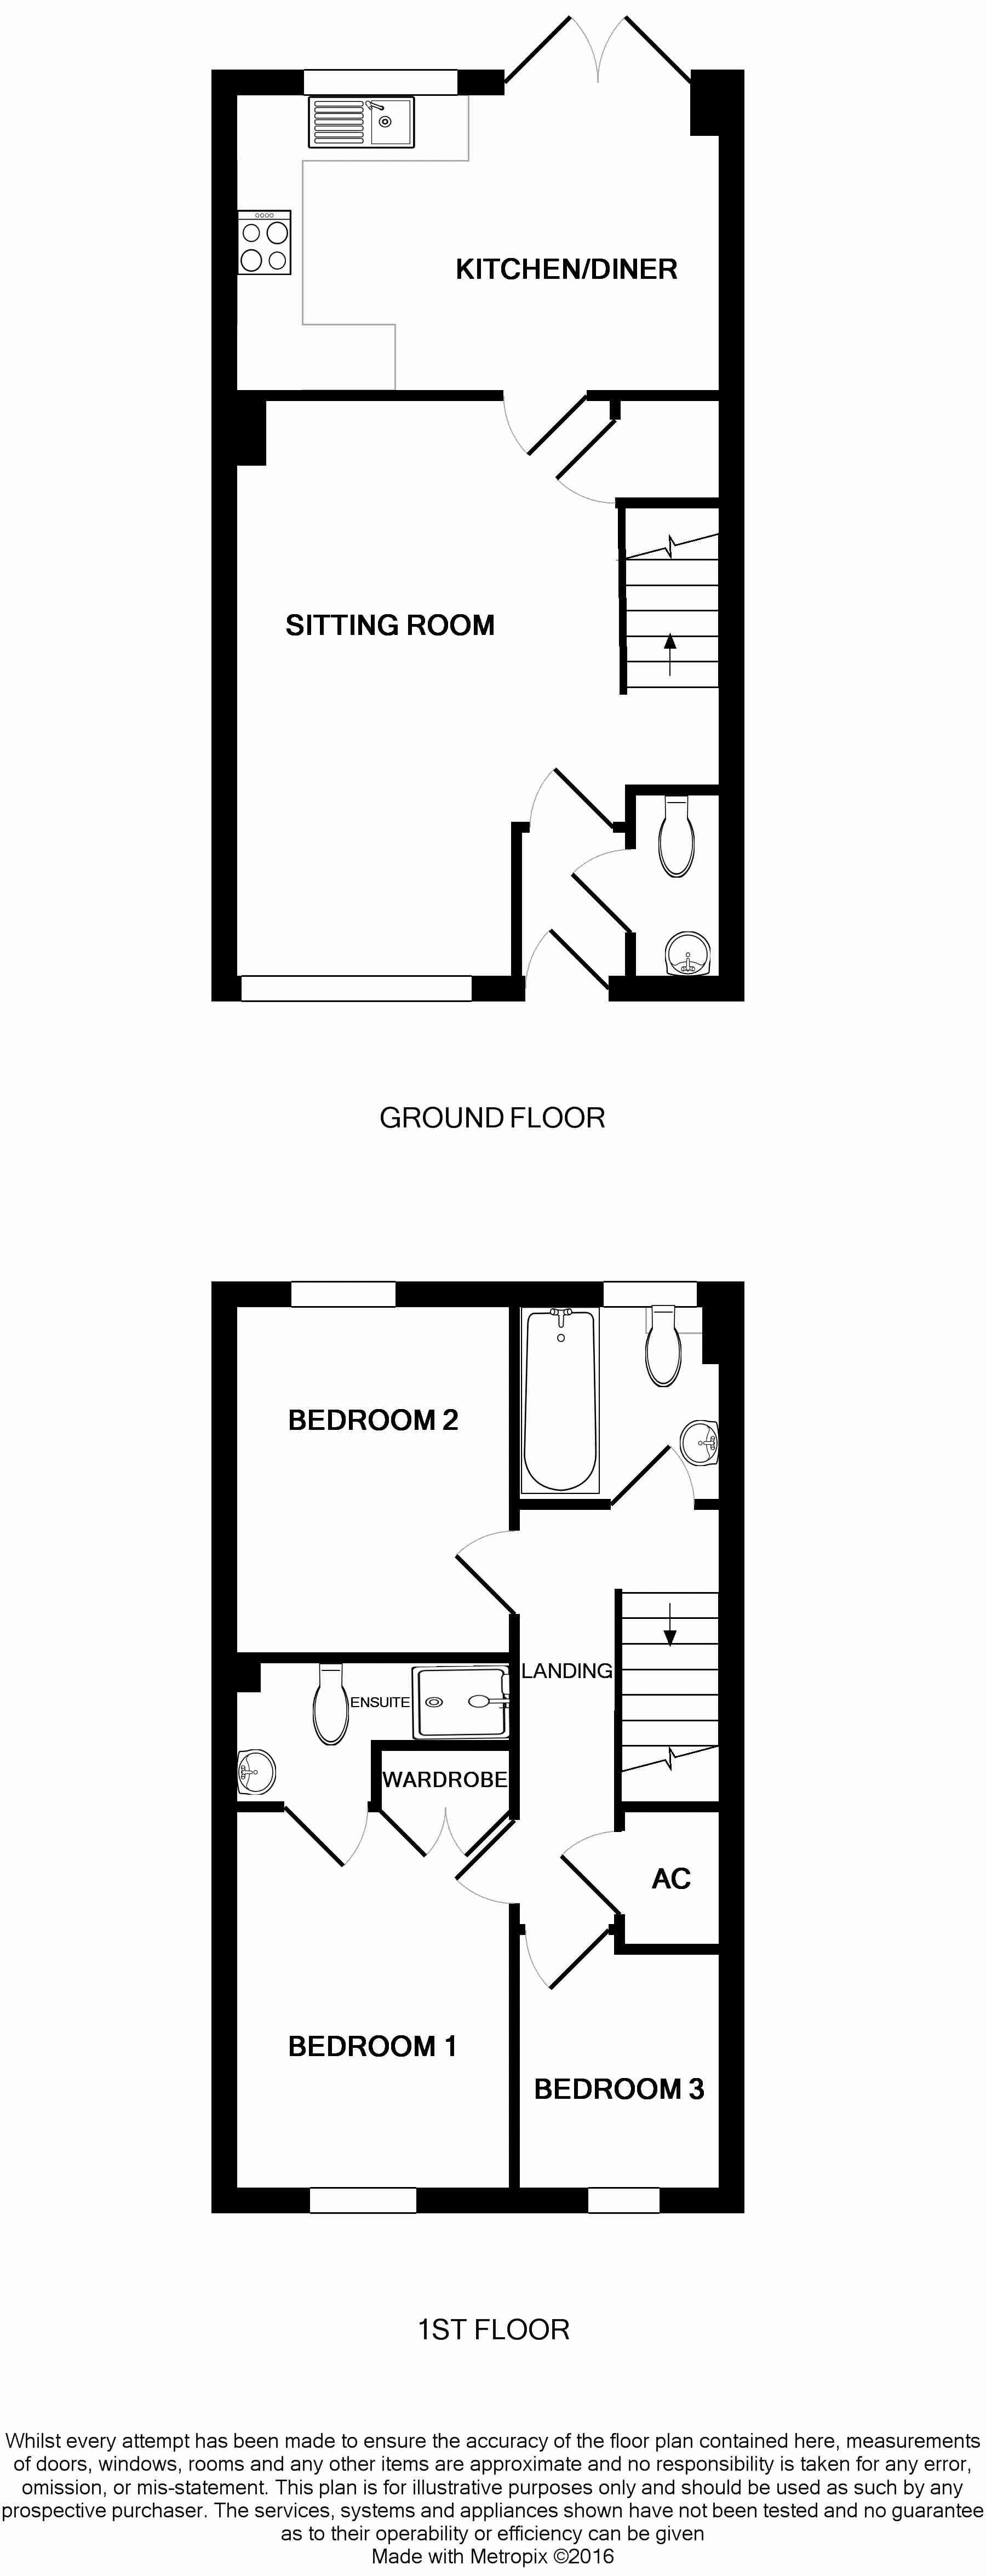 Piazza court street jeanes holland burnell for 125 court street floor plans